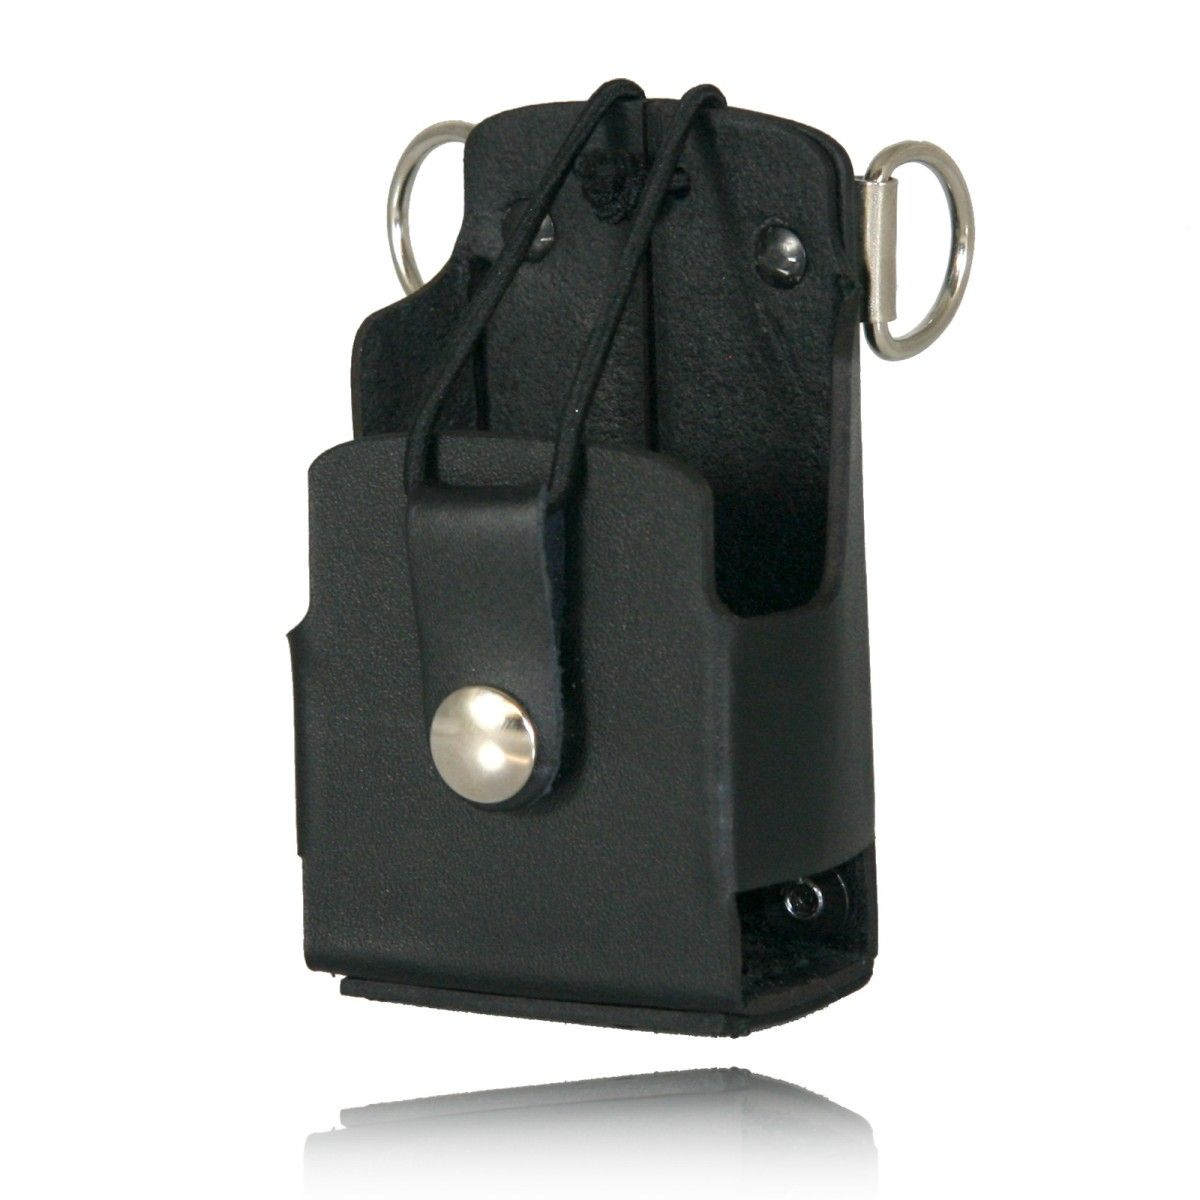 Firefighter's Radio Holder for Kenwood TK-2170